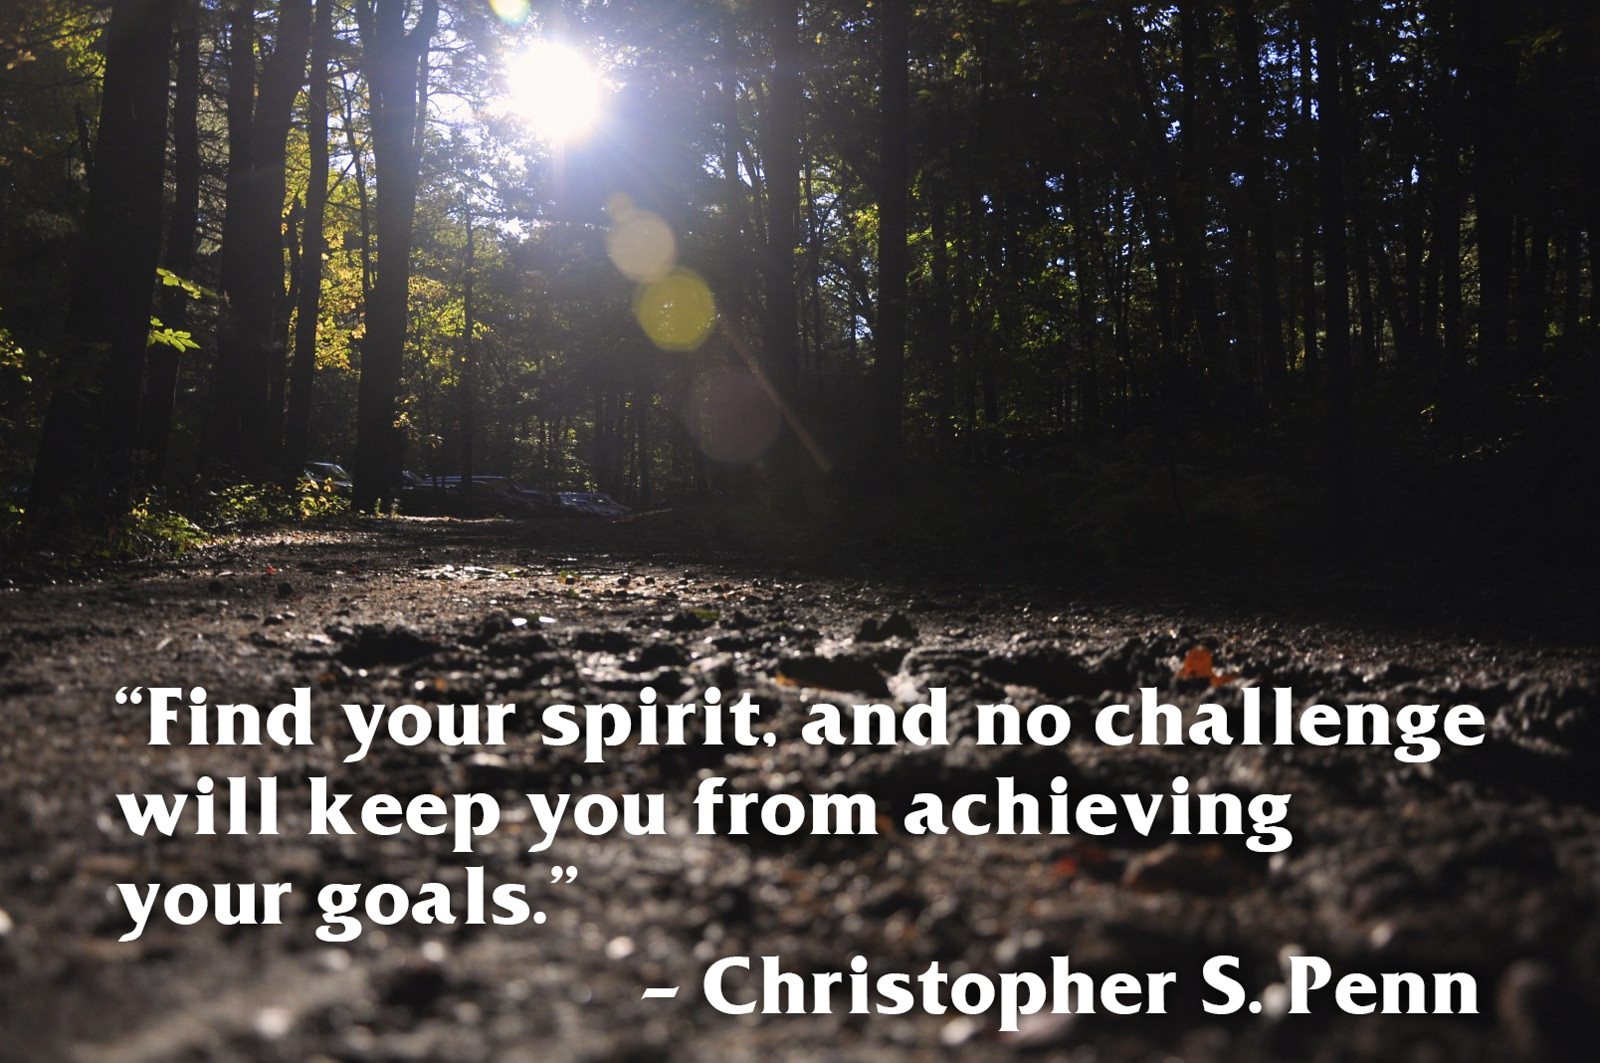 spirit-christopher-penn-religious-quotes-sayings-pictures